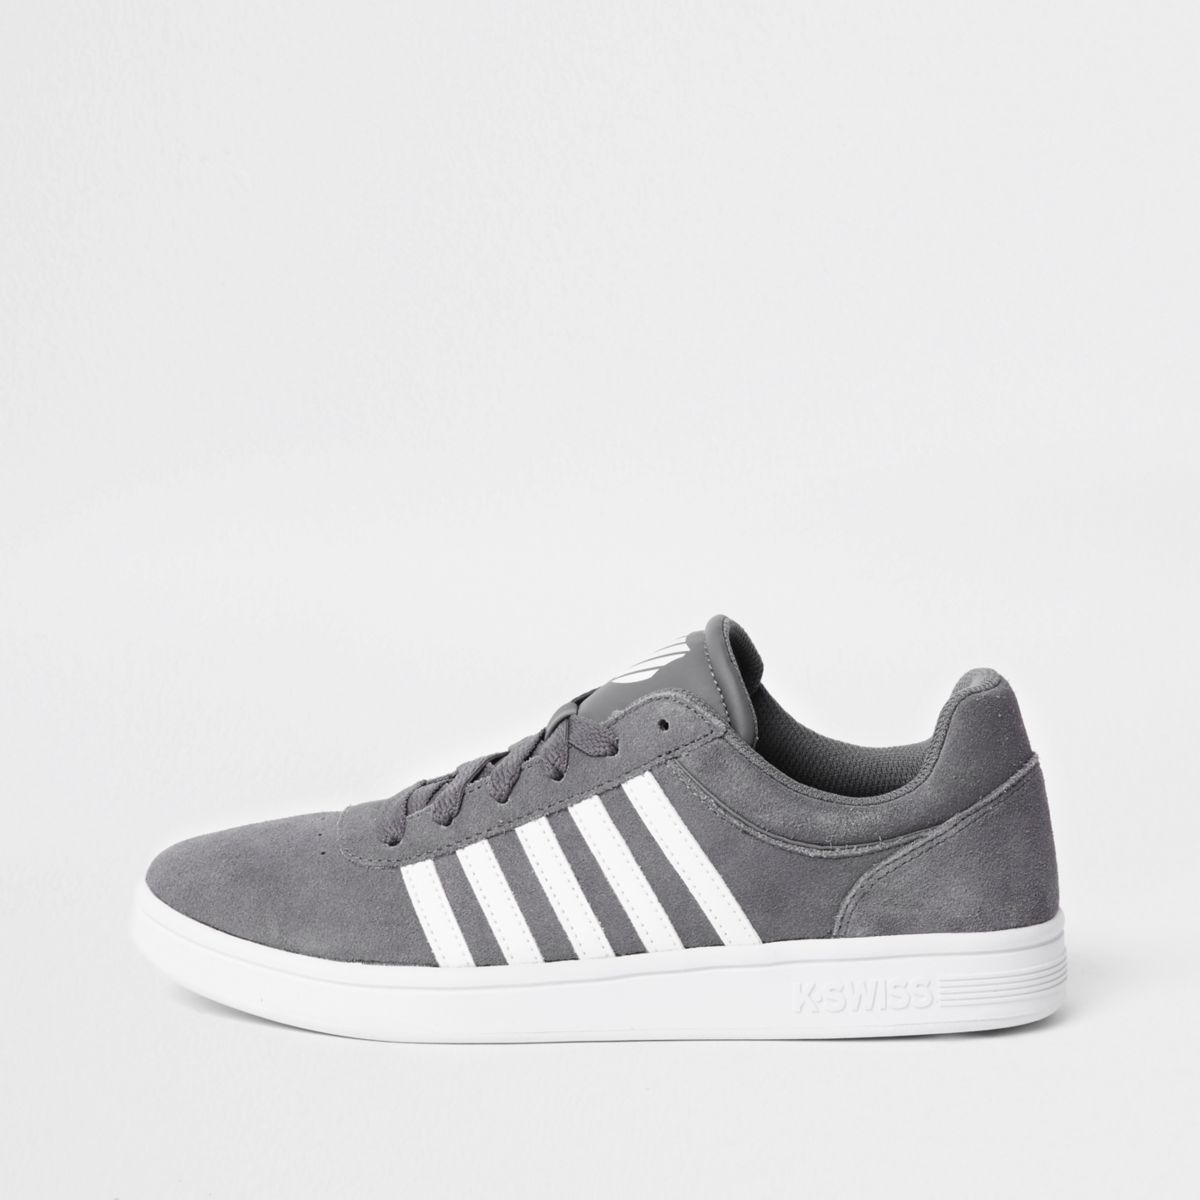 Grey K-Swiss low top court runner trainers